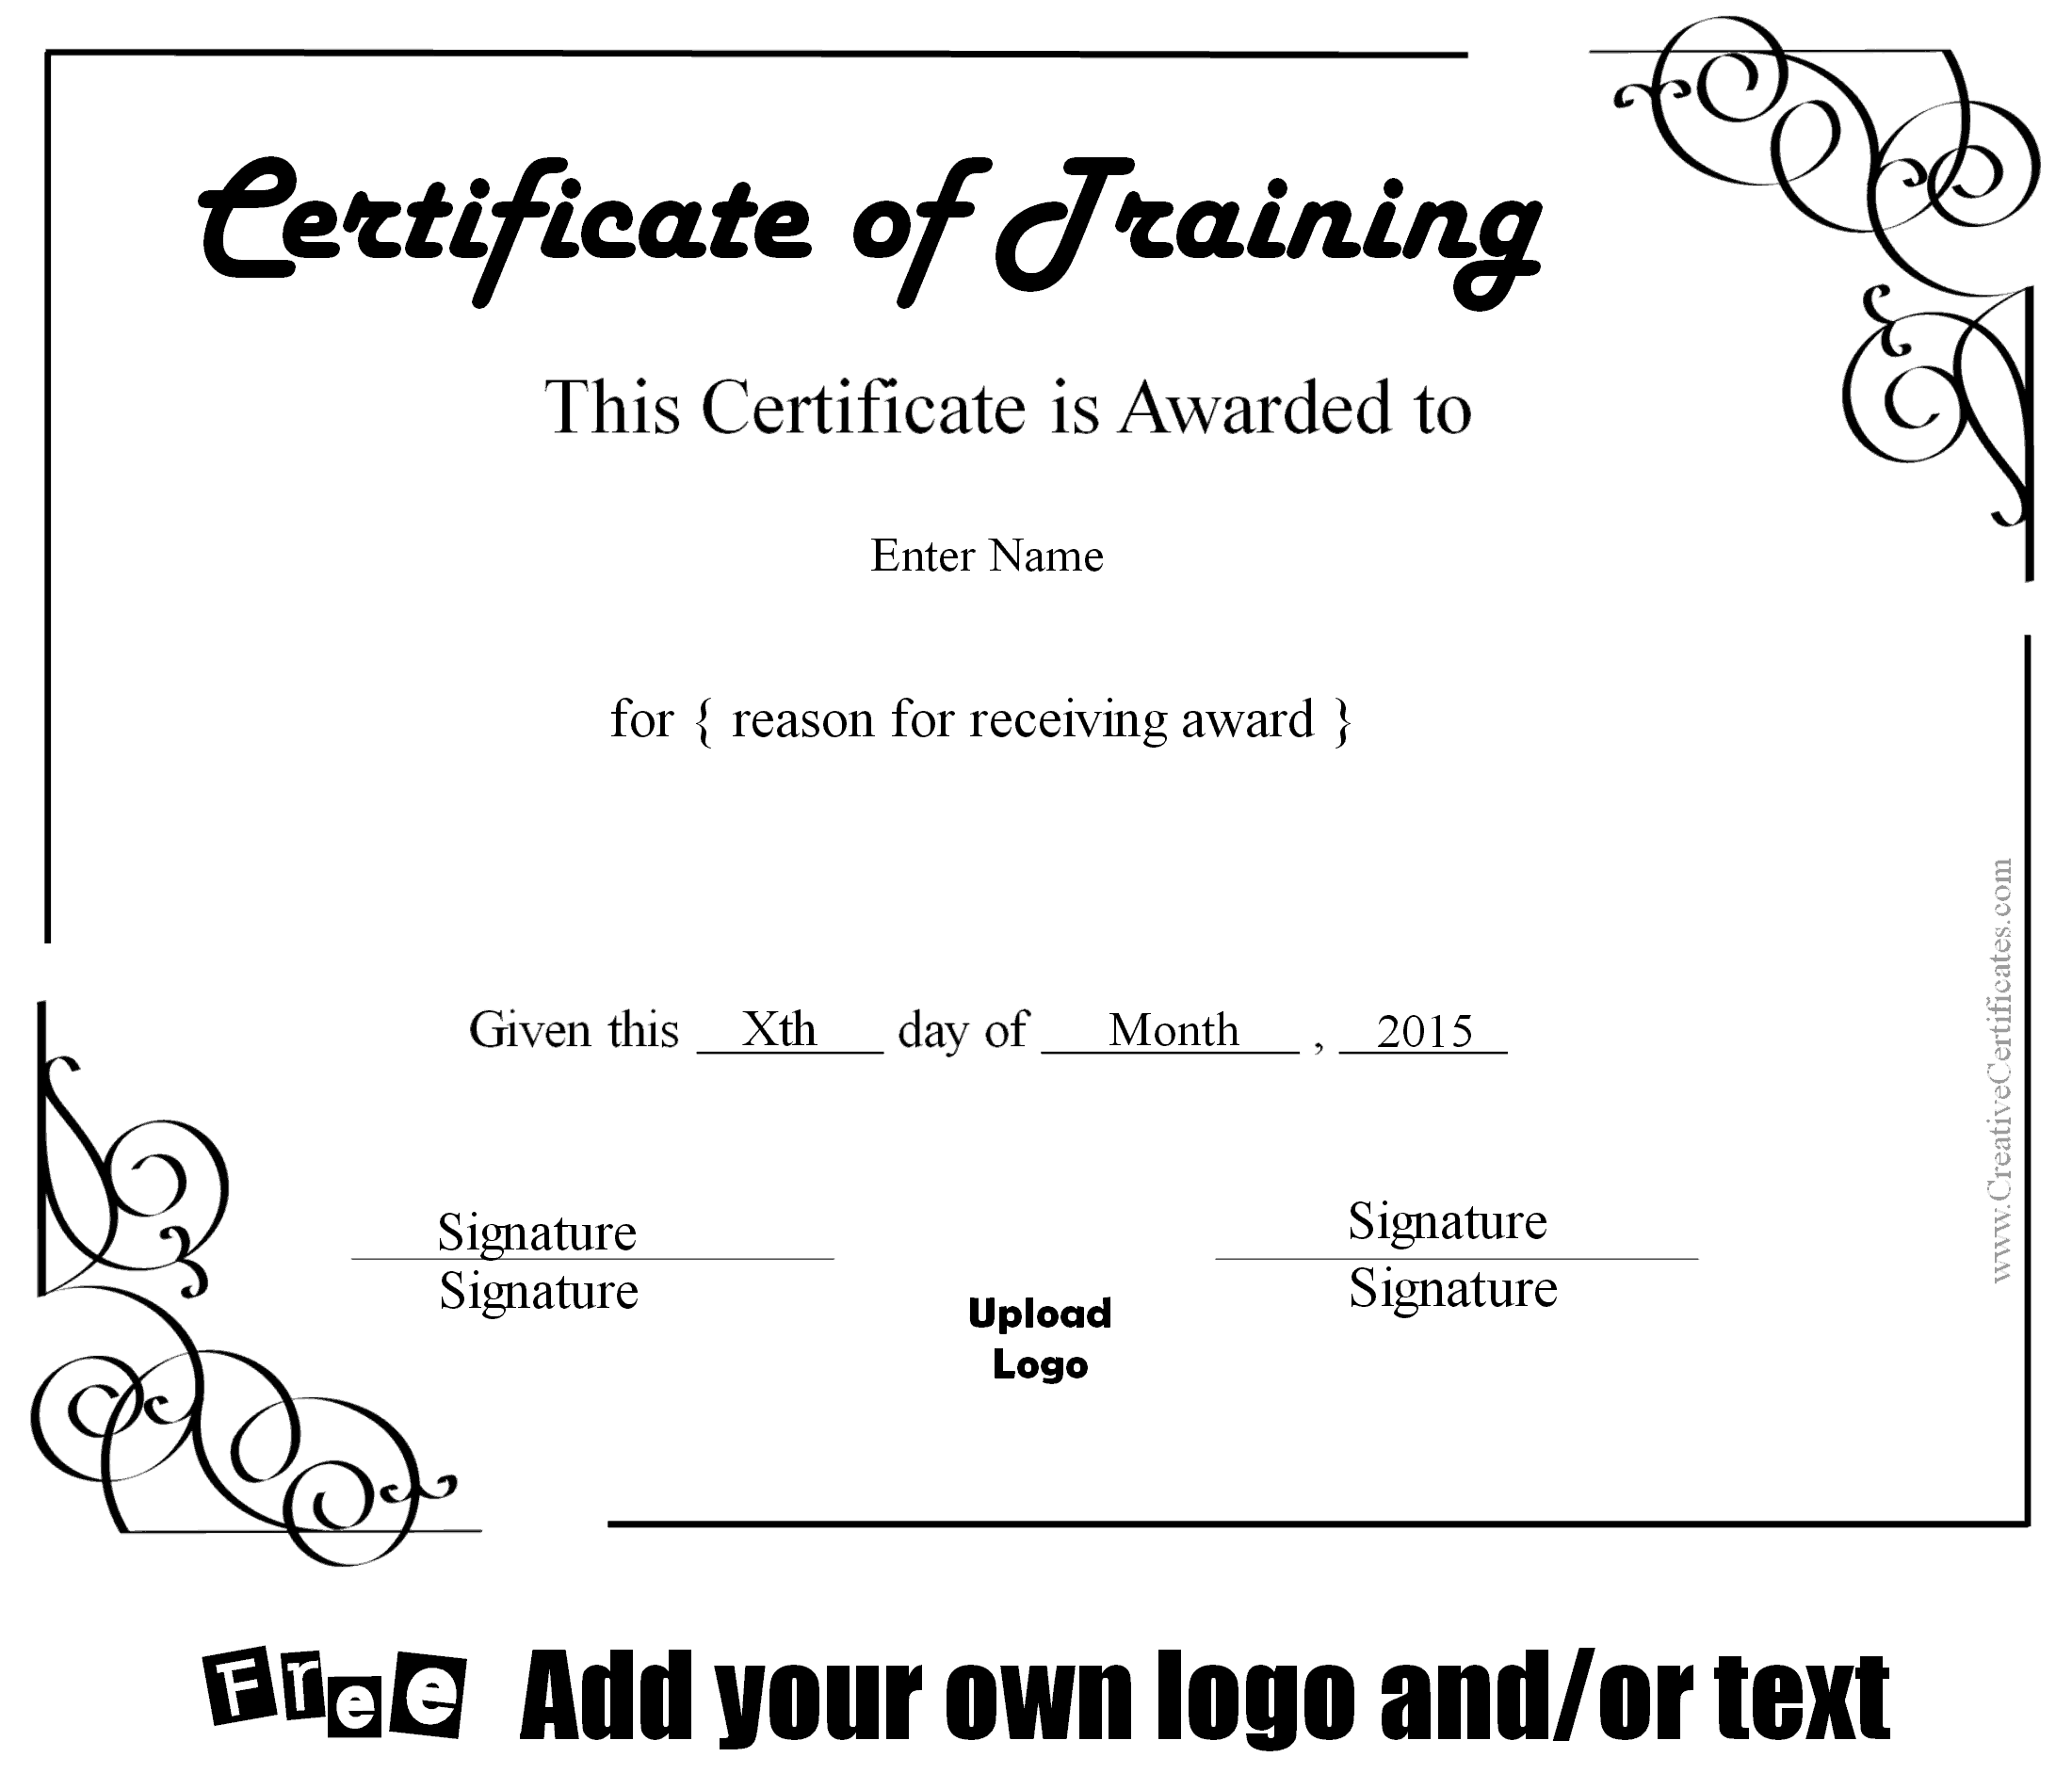 Education Certificates  Free Printable Certificates